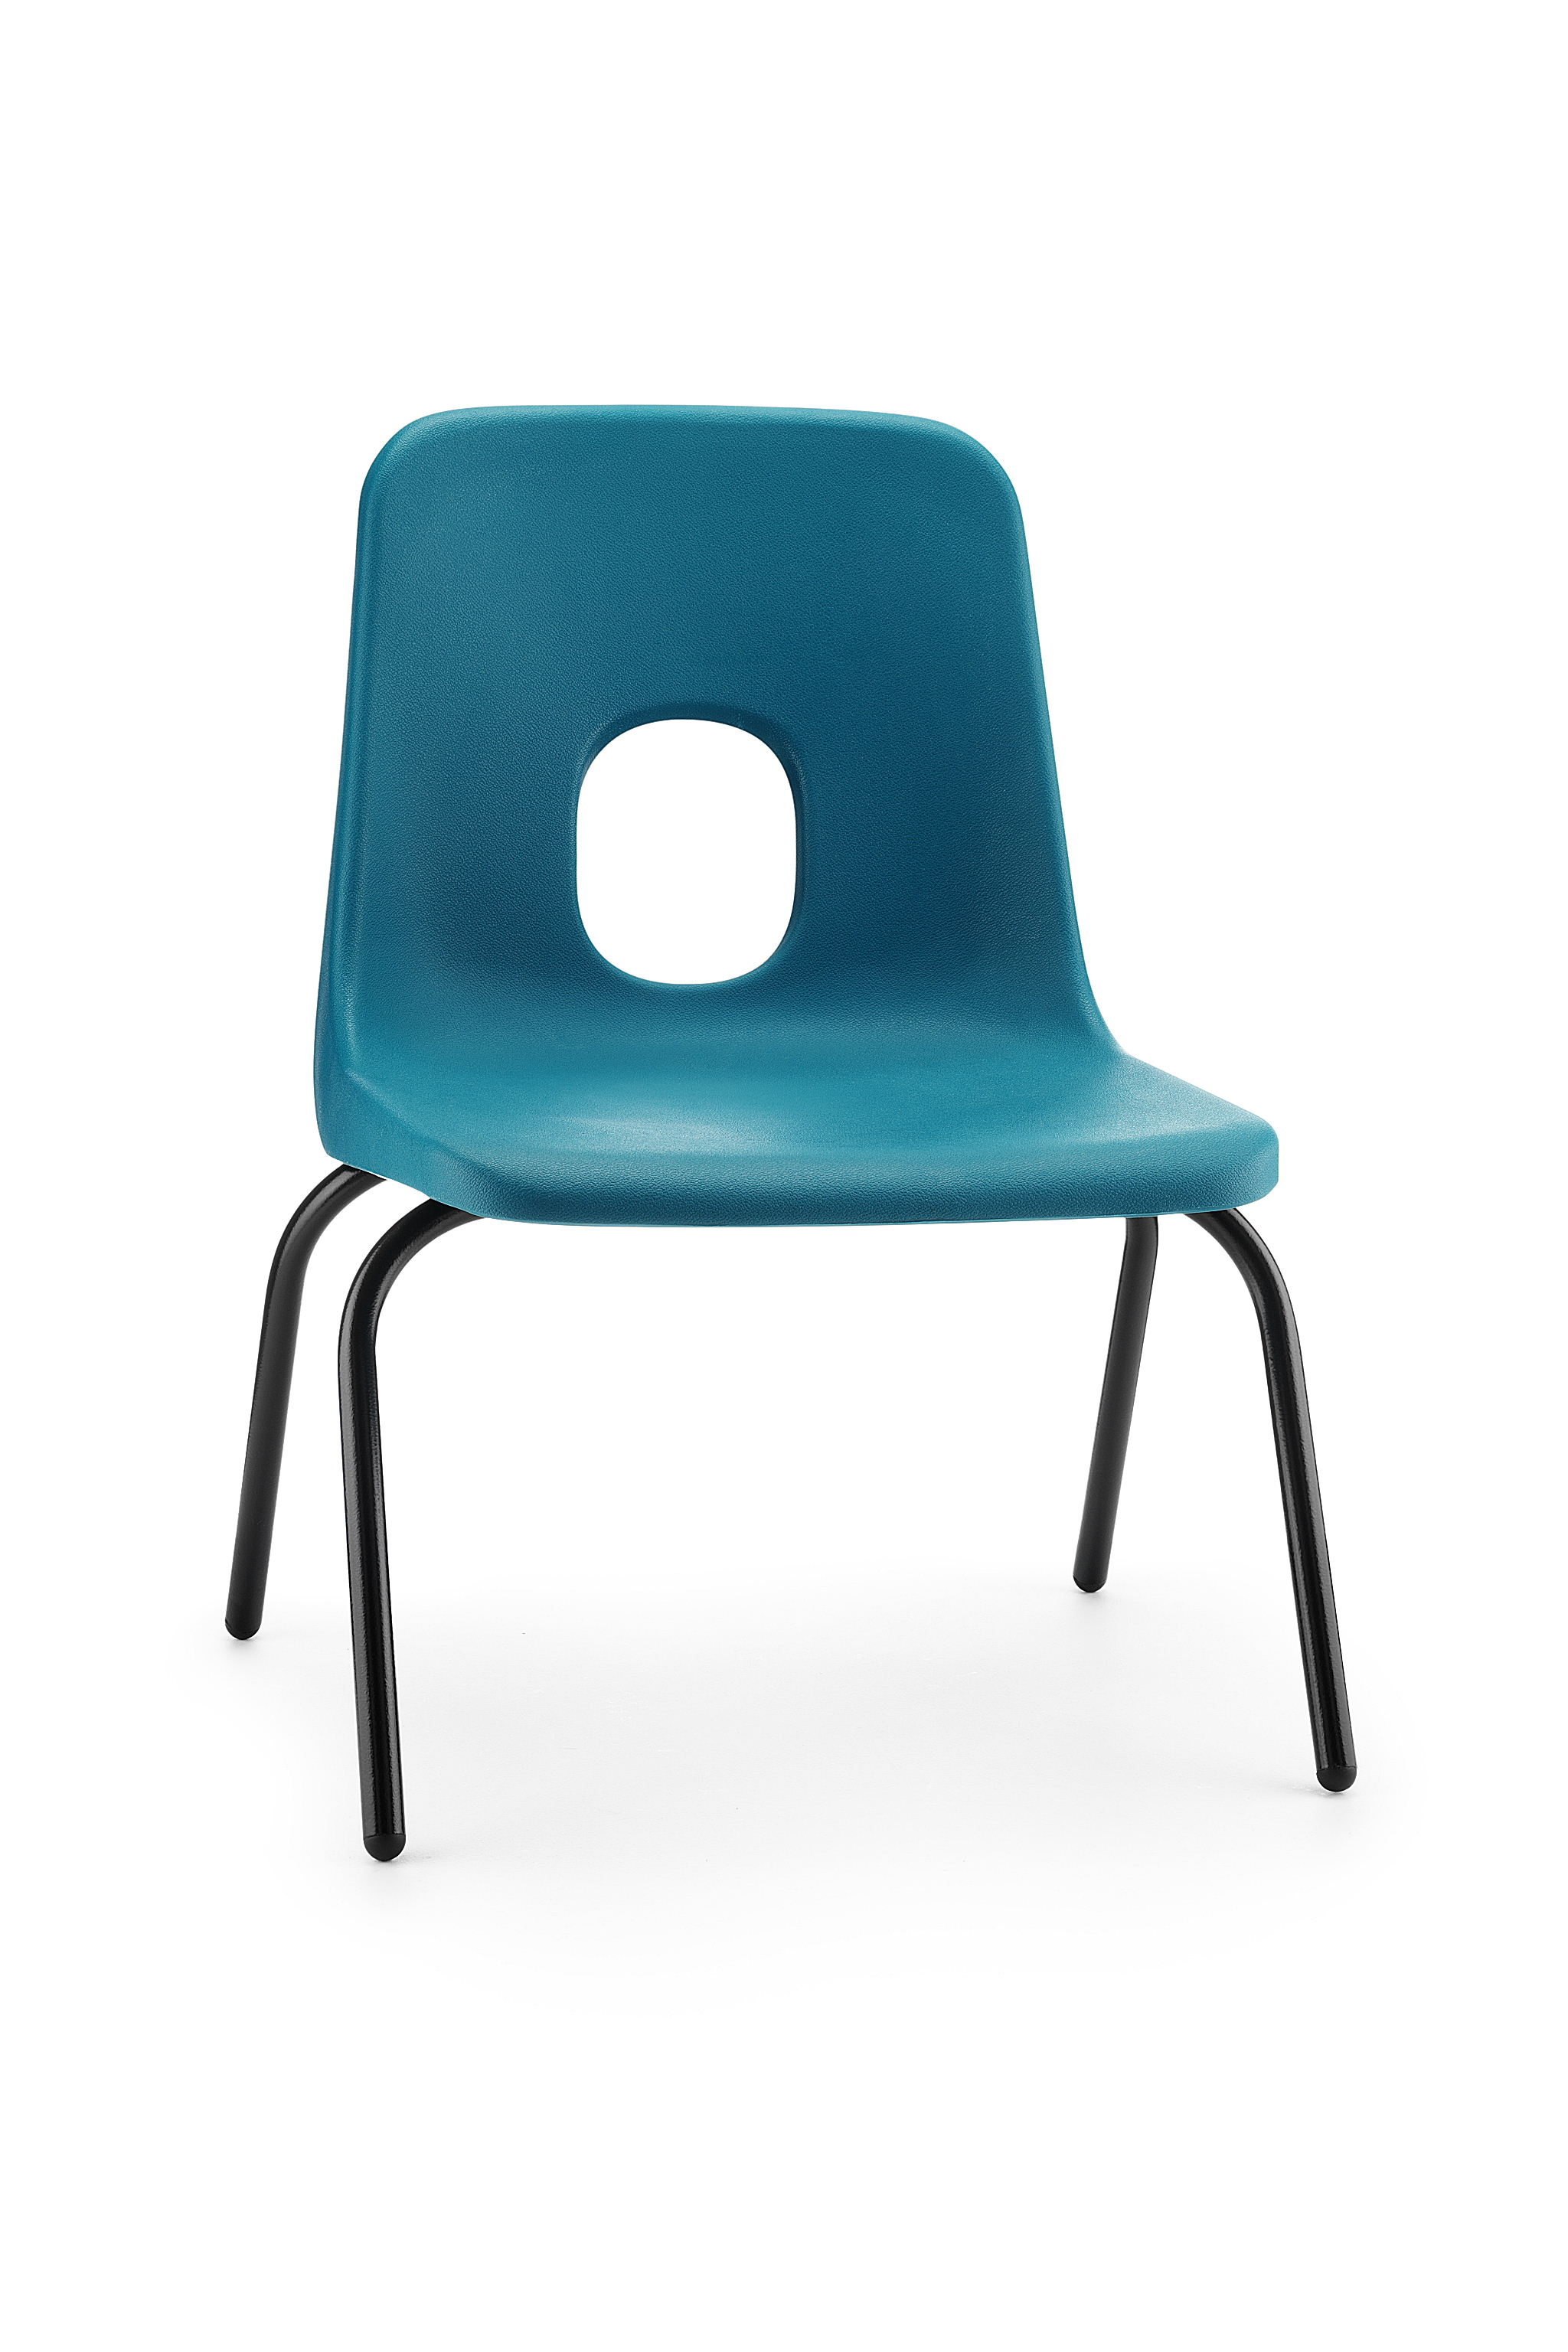 Teacher Chair E Series Chair 4 Leg Chair Standard Finish Welsh